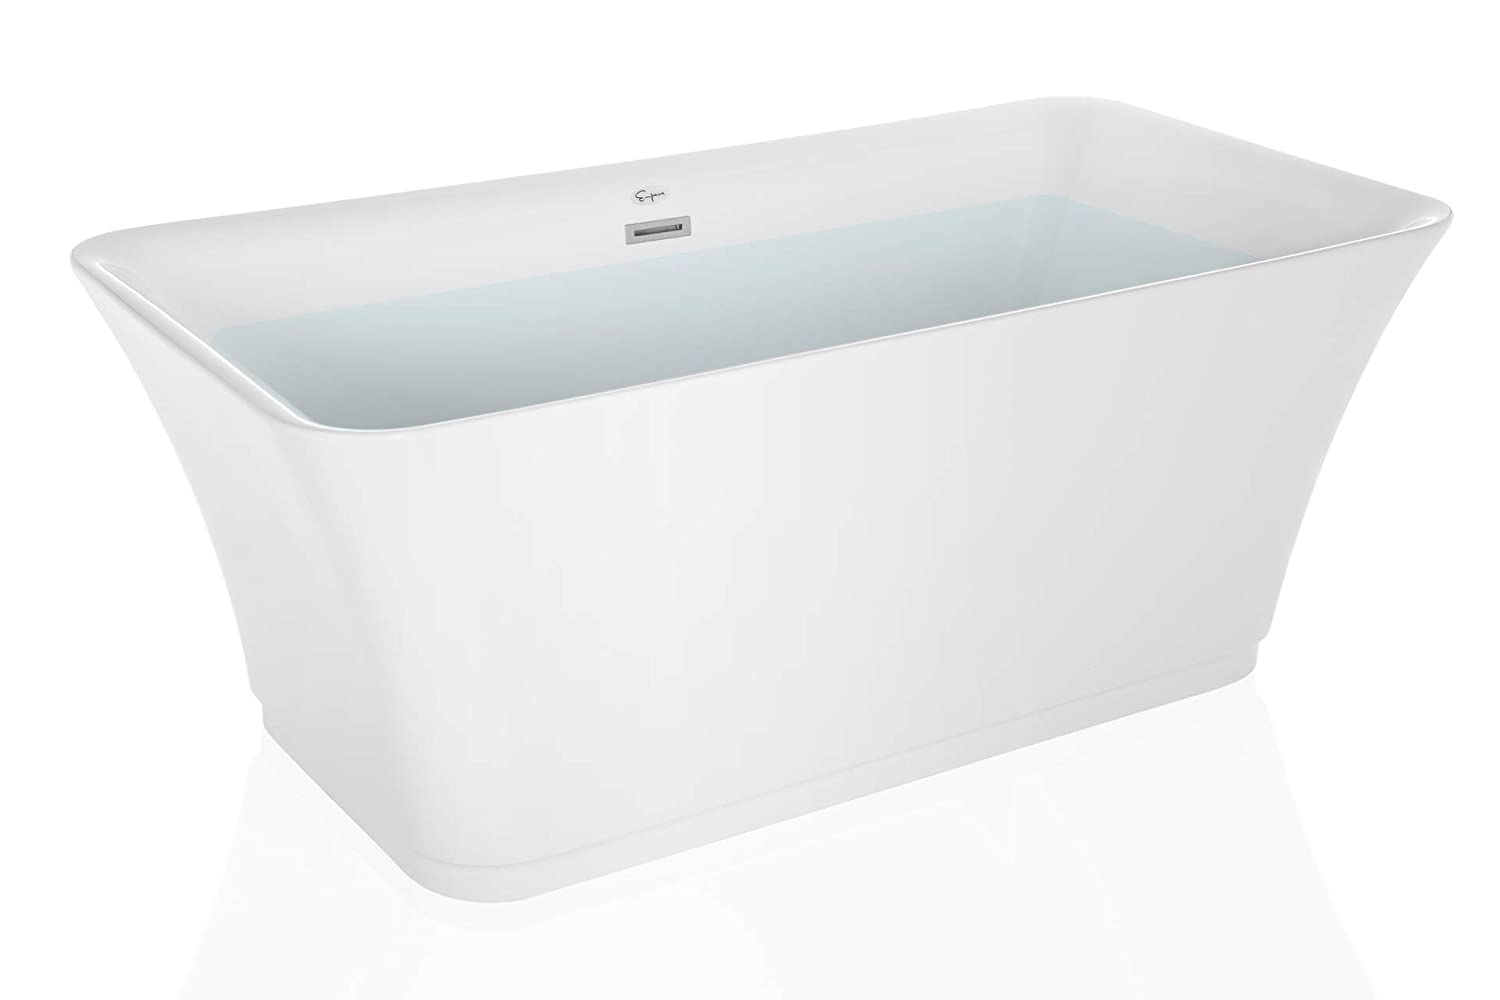 Empava Made In USA 59 Inch Luxury Freestanding Bathtub Acrylic Soaking SPA Tub Contemporary Design with Brushed Nickel Overflow and Drain FT1511X59, T1511, White